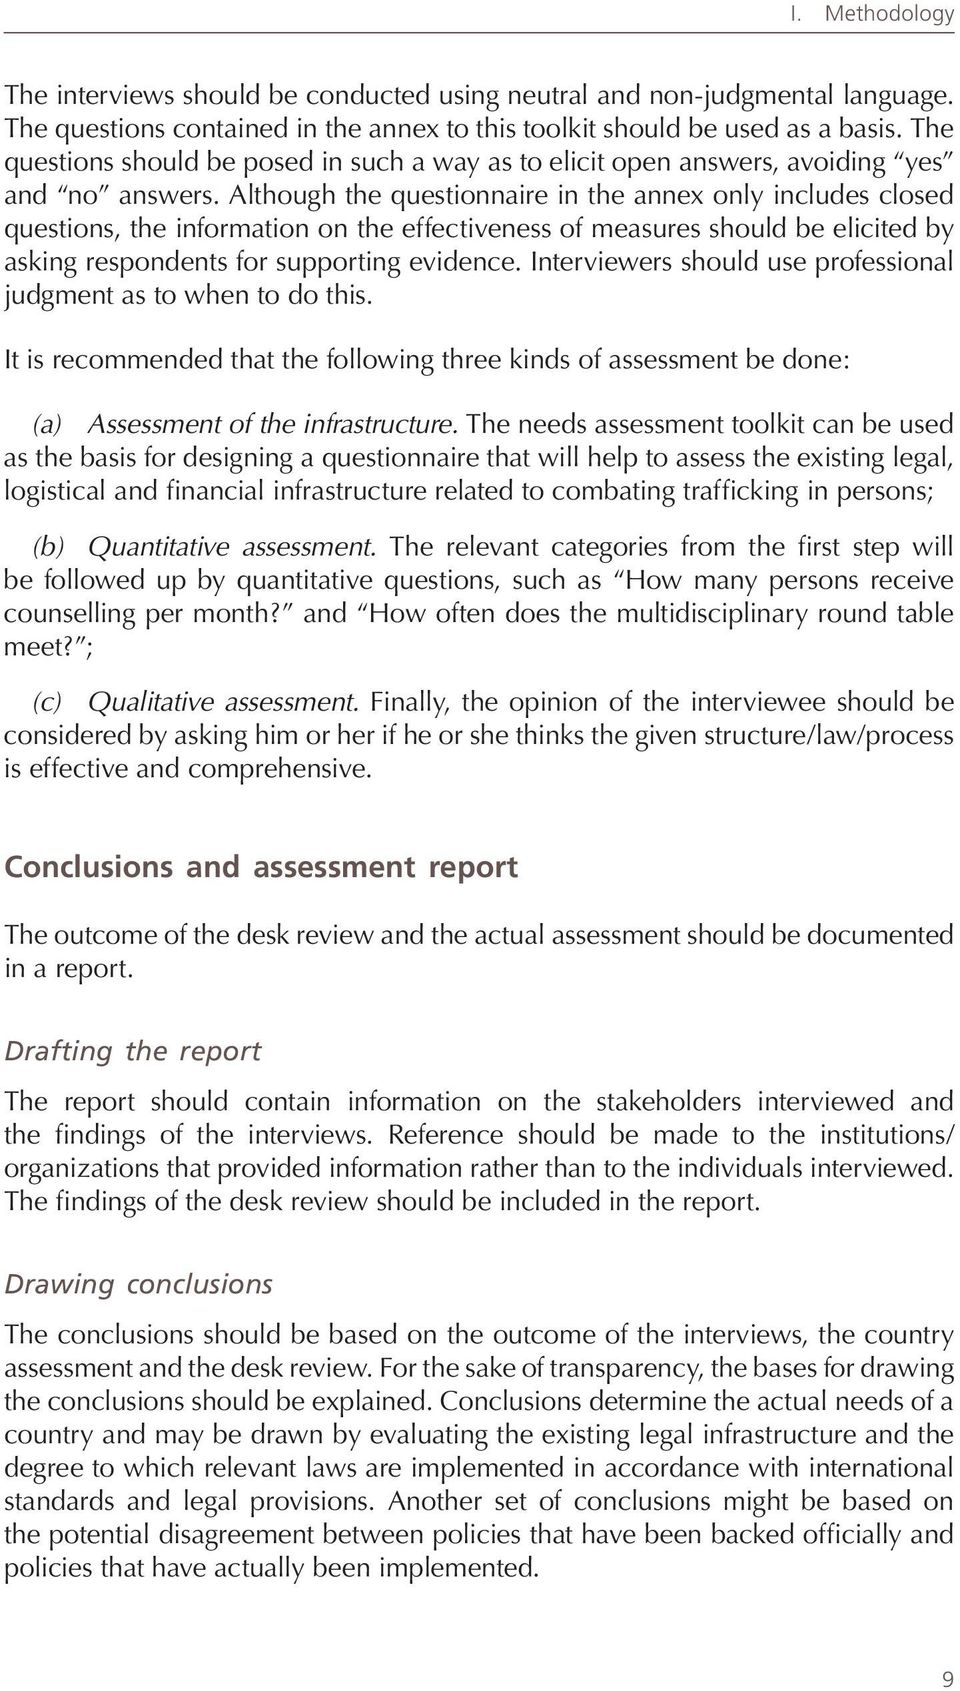 Although the questionnaire in the annex only includes closed questions, the information on the effectiveness of measures should be elicited by asking respondents for supporting evidence.